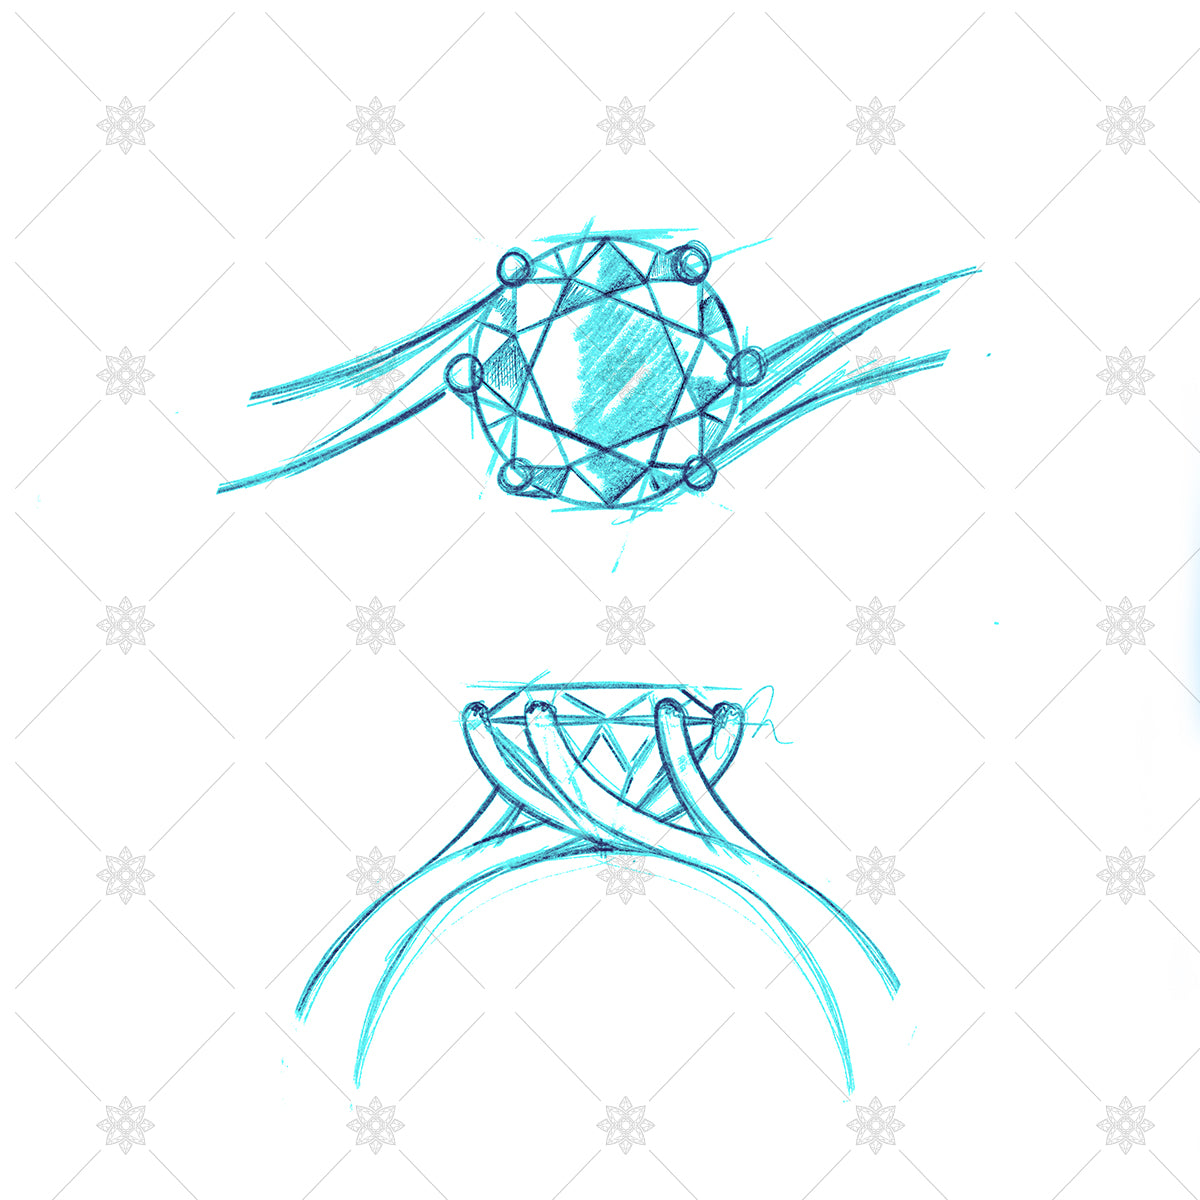 Diamond ring pencil sketch coloured drwaing